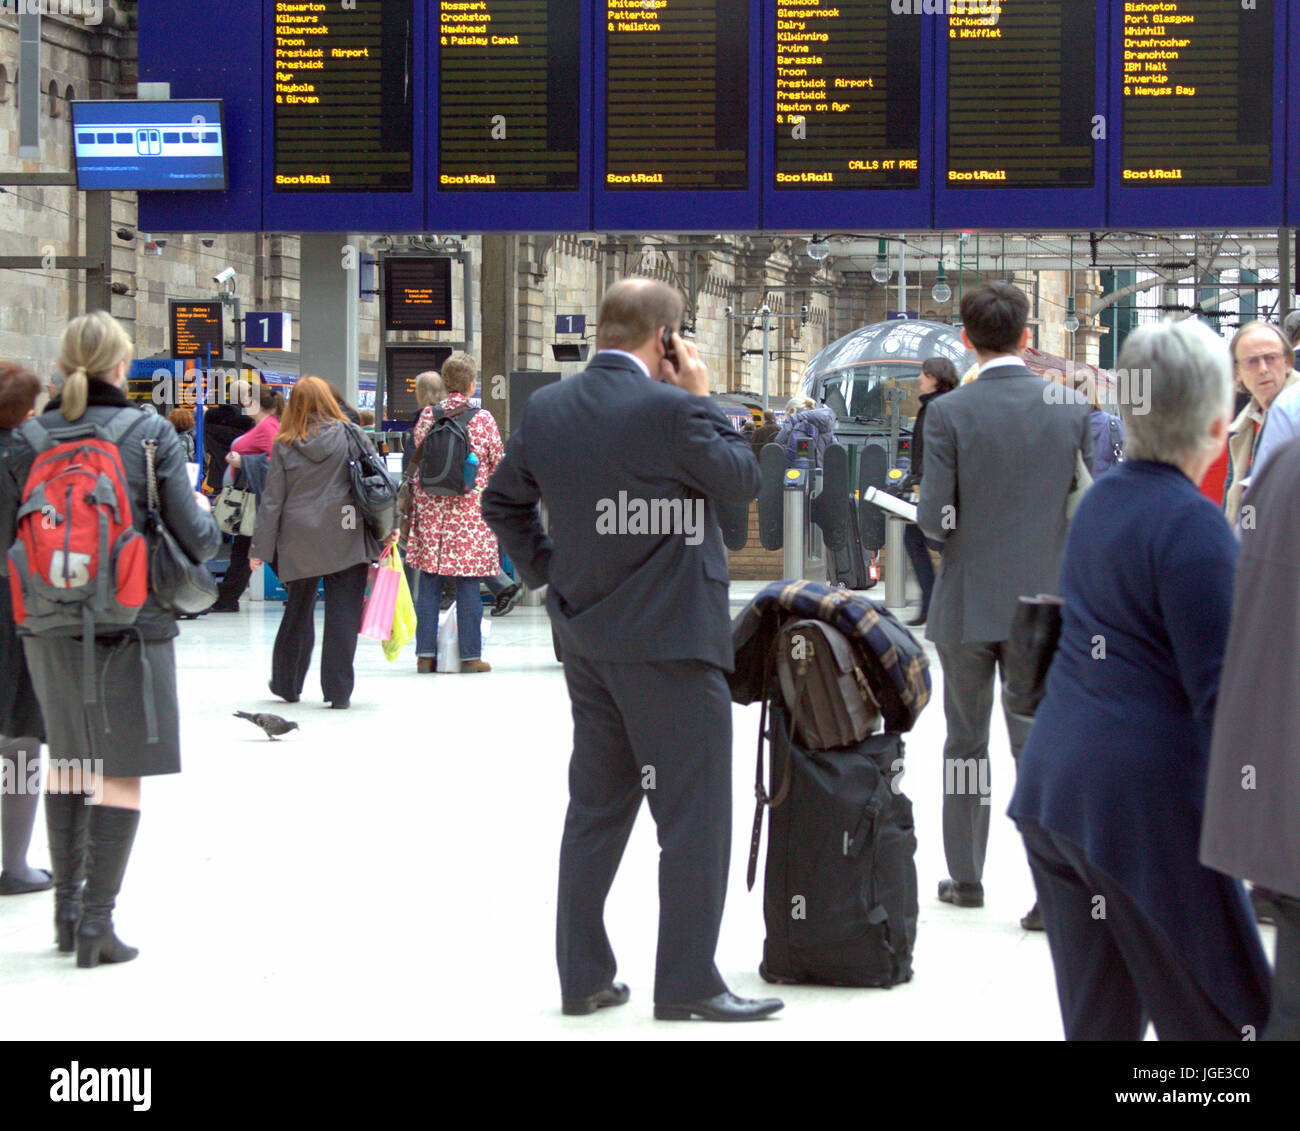 businessman on mobile phone in Glasgow Central  train station in front of departures board - Stock Image